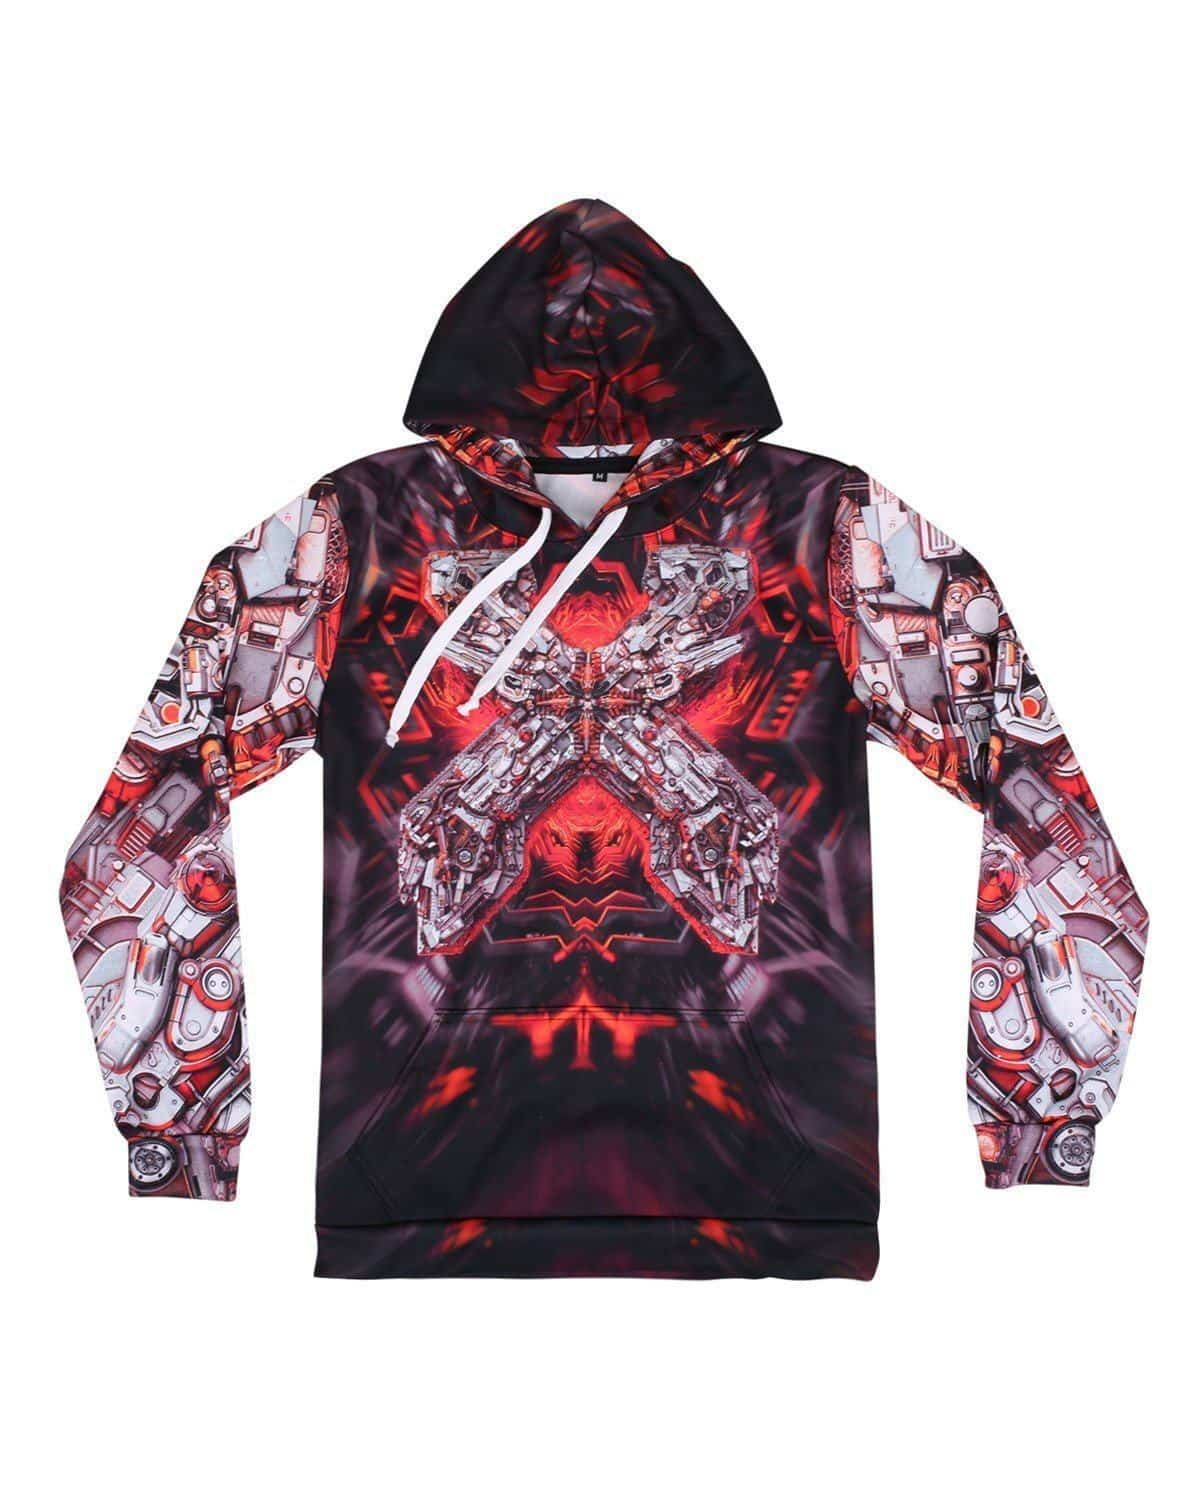 Excision 'The Paradox 2017' Dye Sub Hoodie - Black/Red